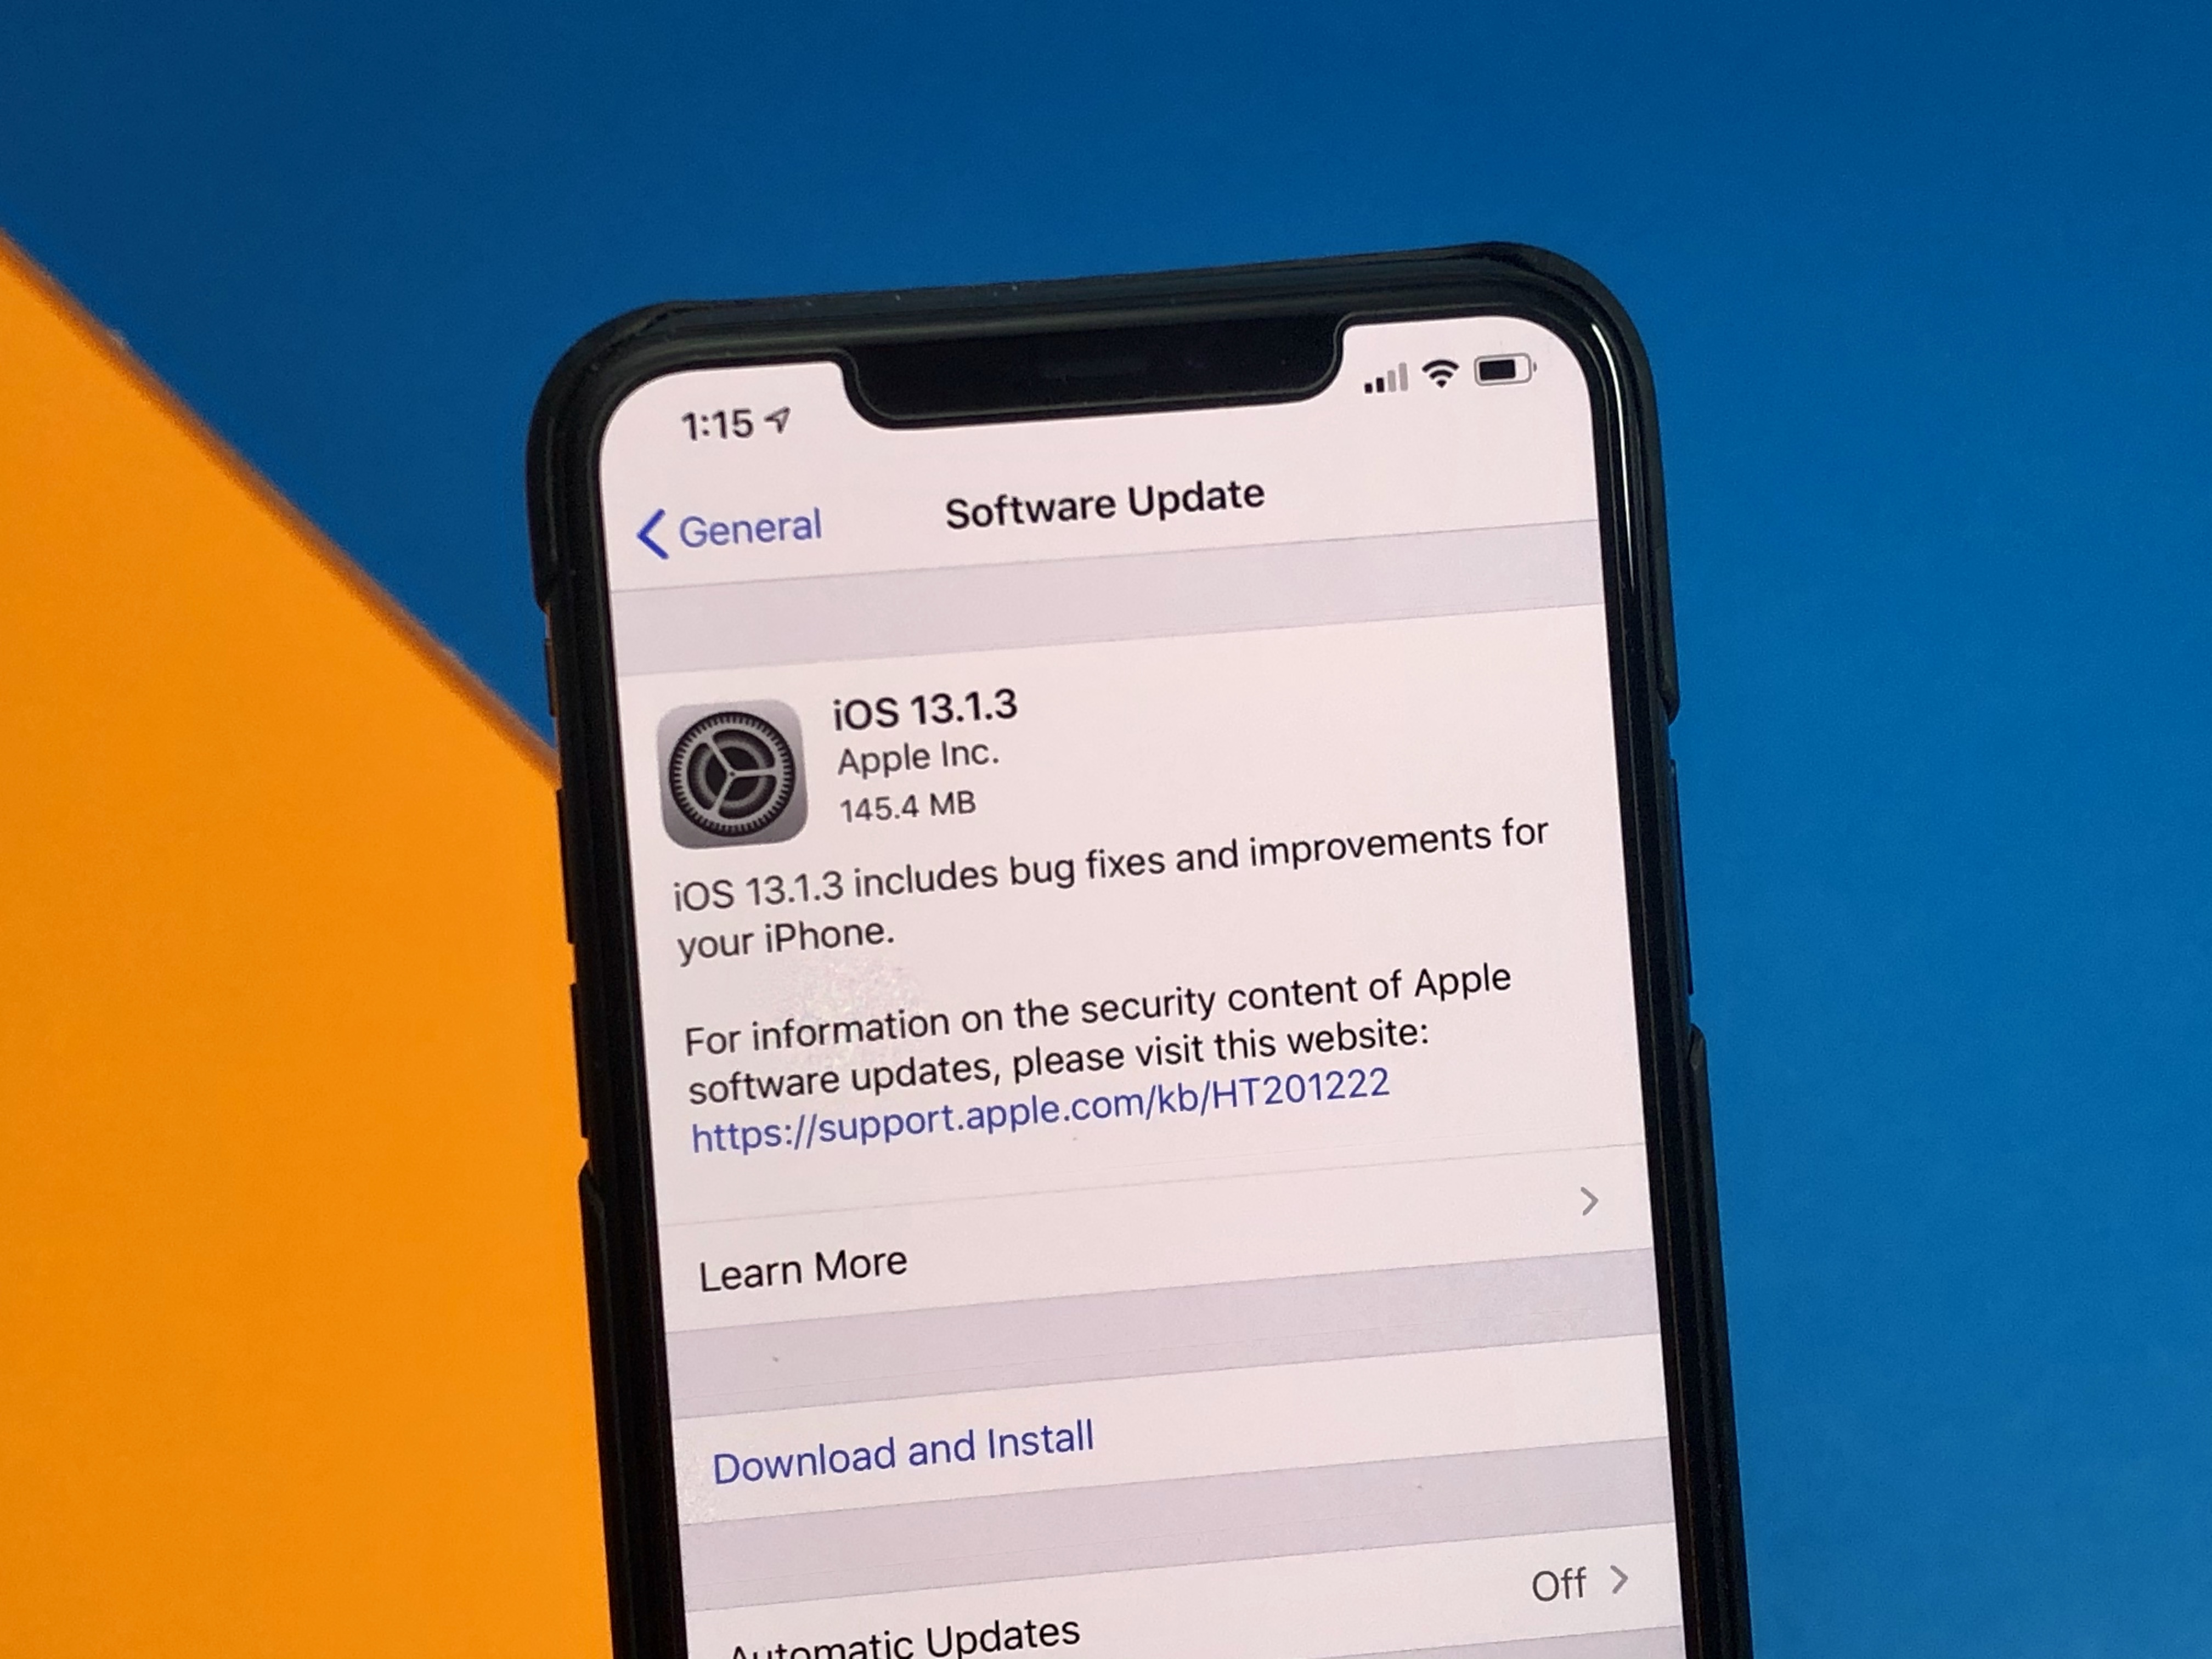 5 Things to Know About the iOS 13.1.3 Update